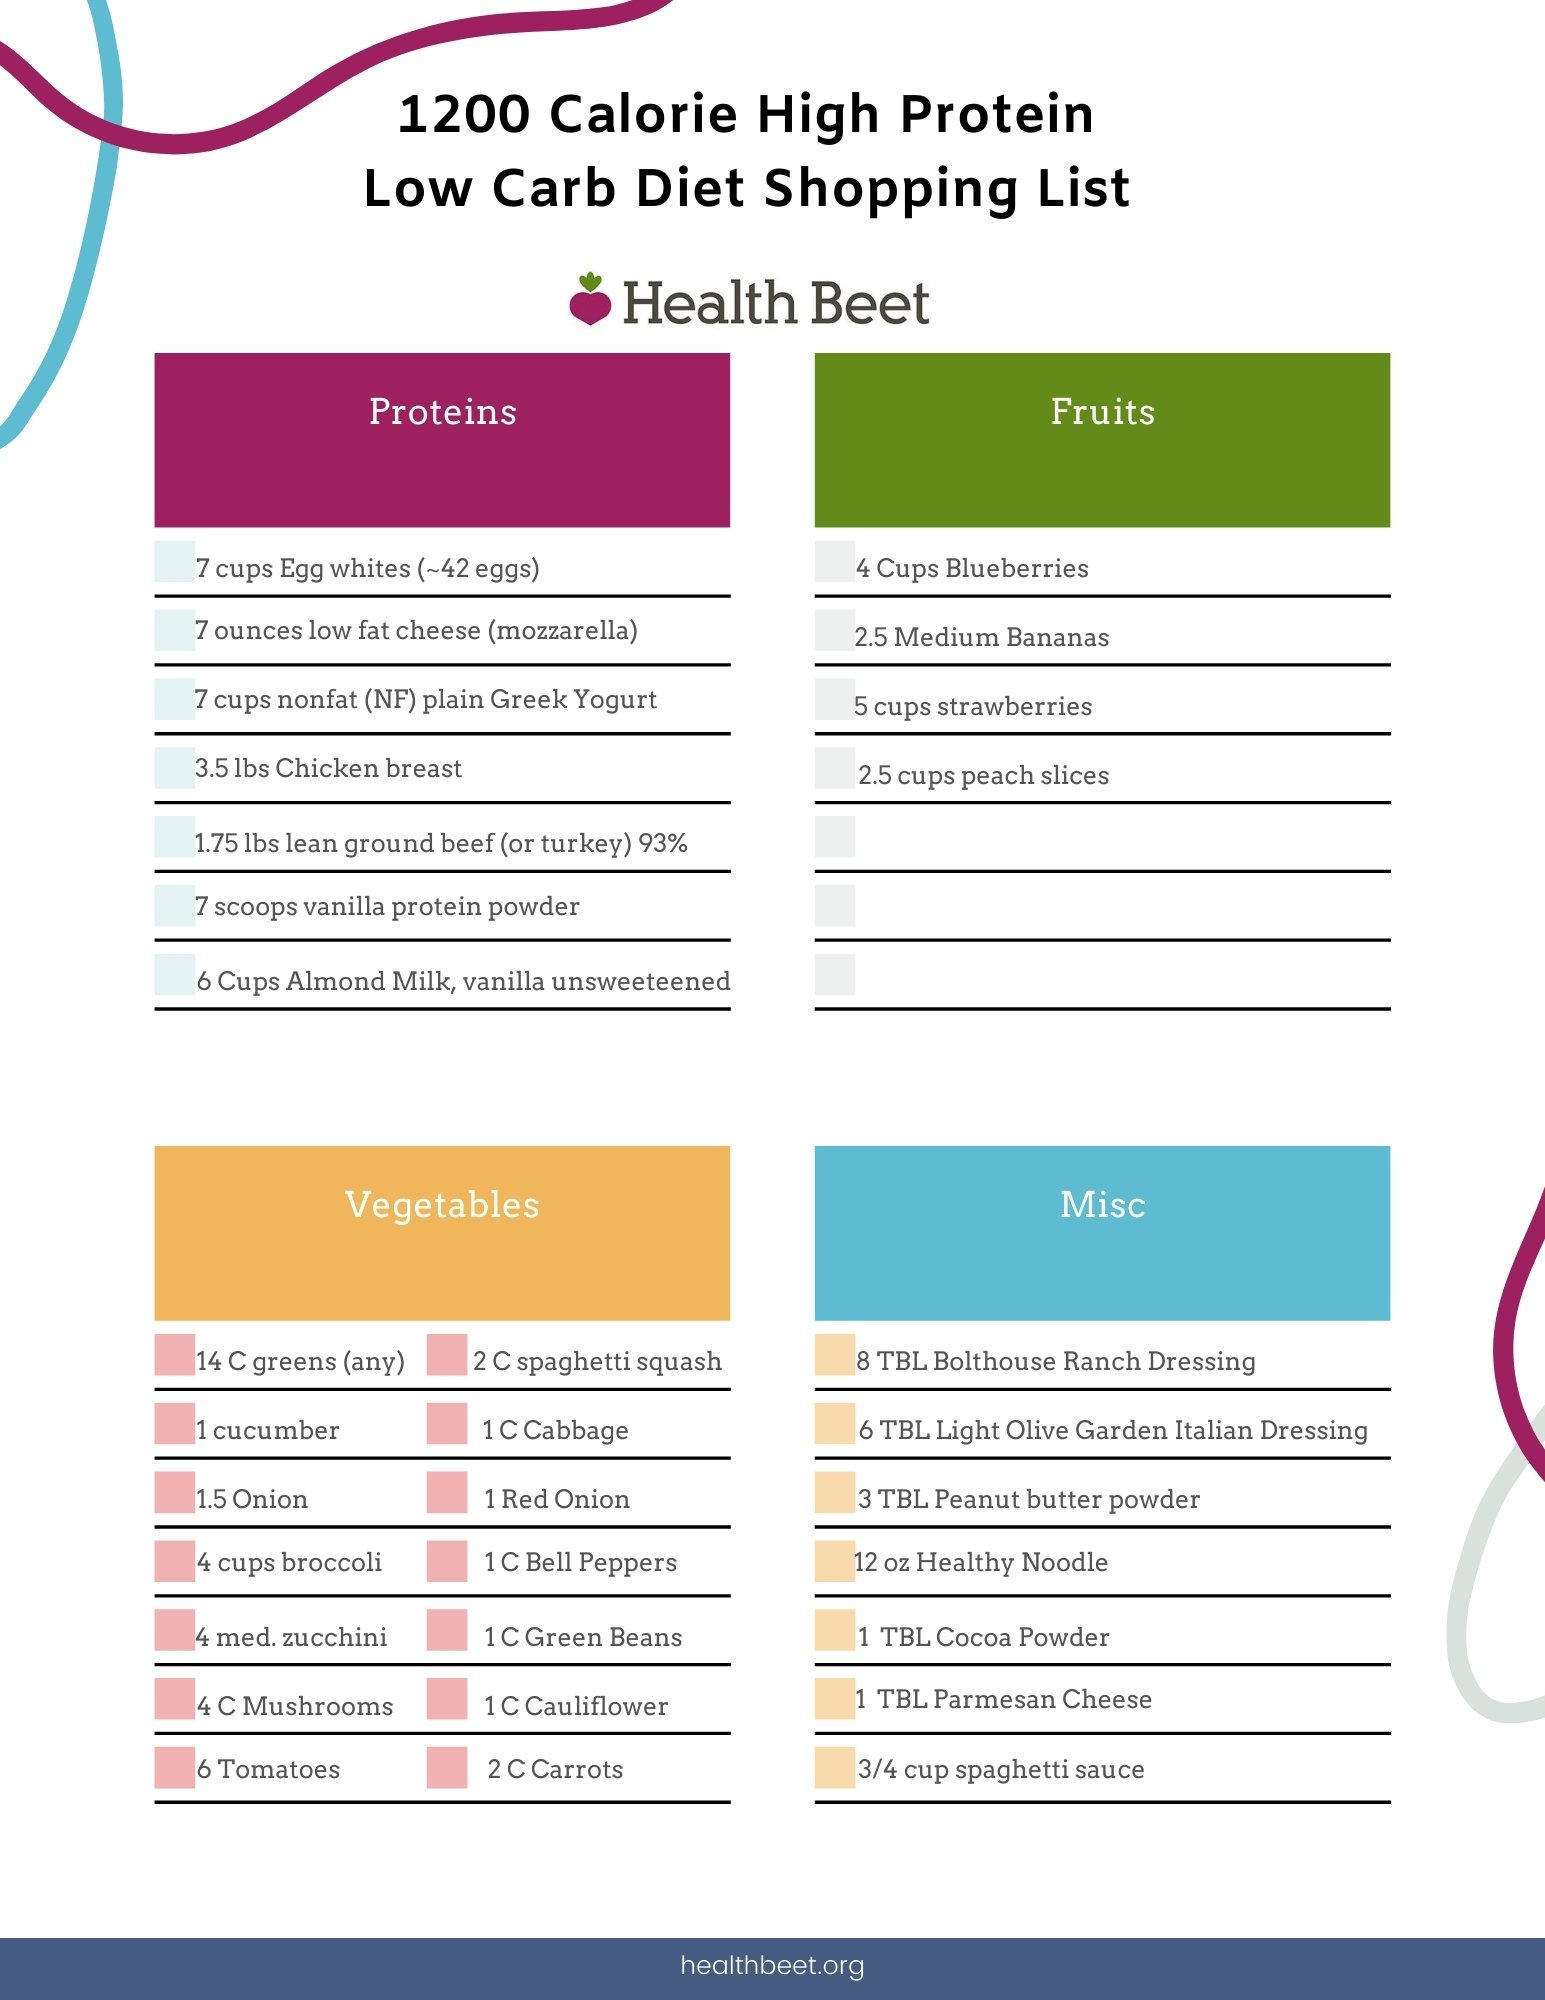 1200 calorie high protein meal plan shopping list from health beet